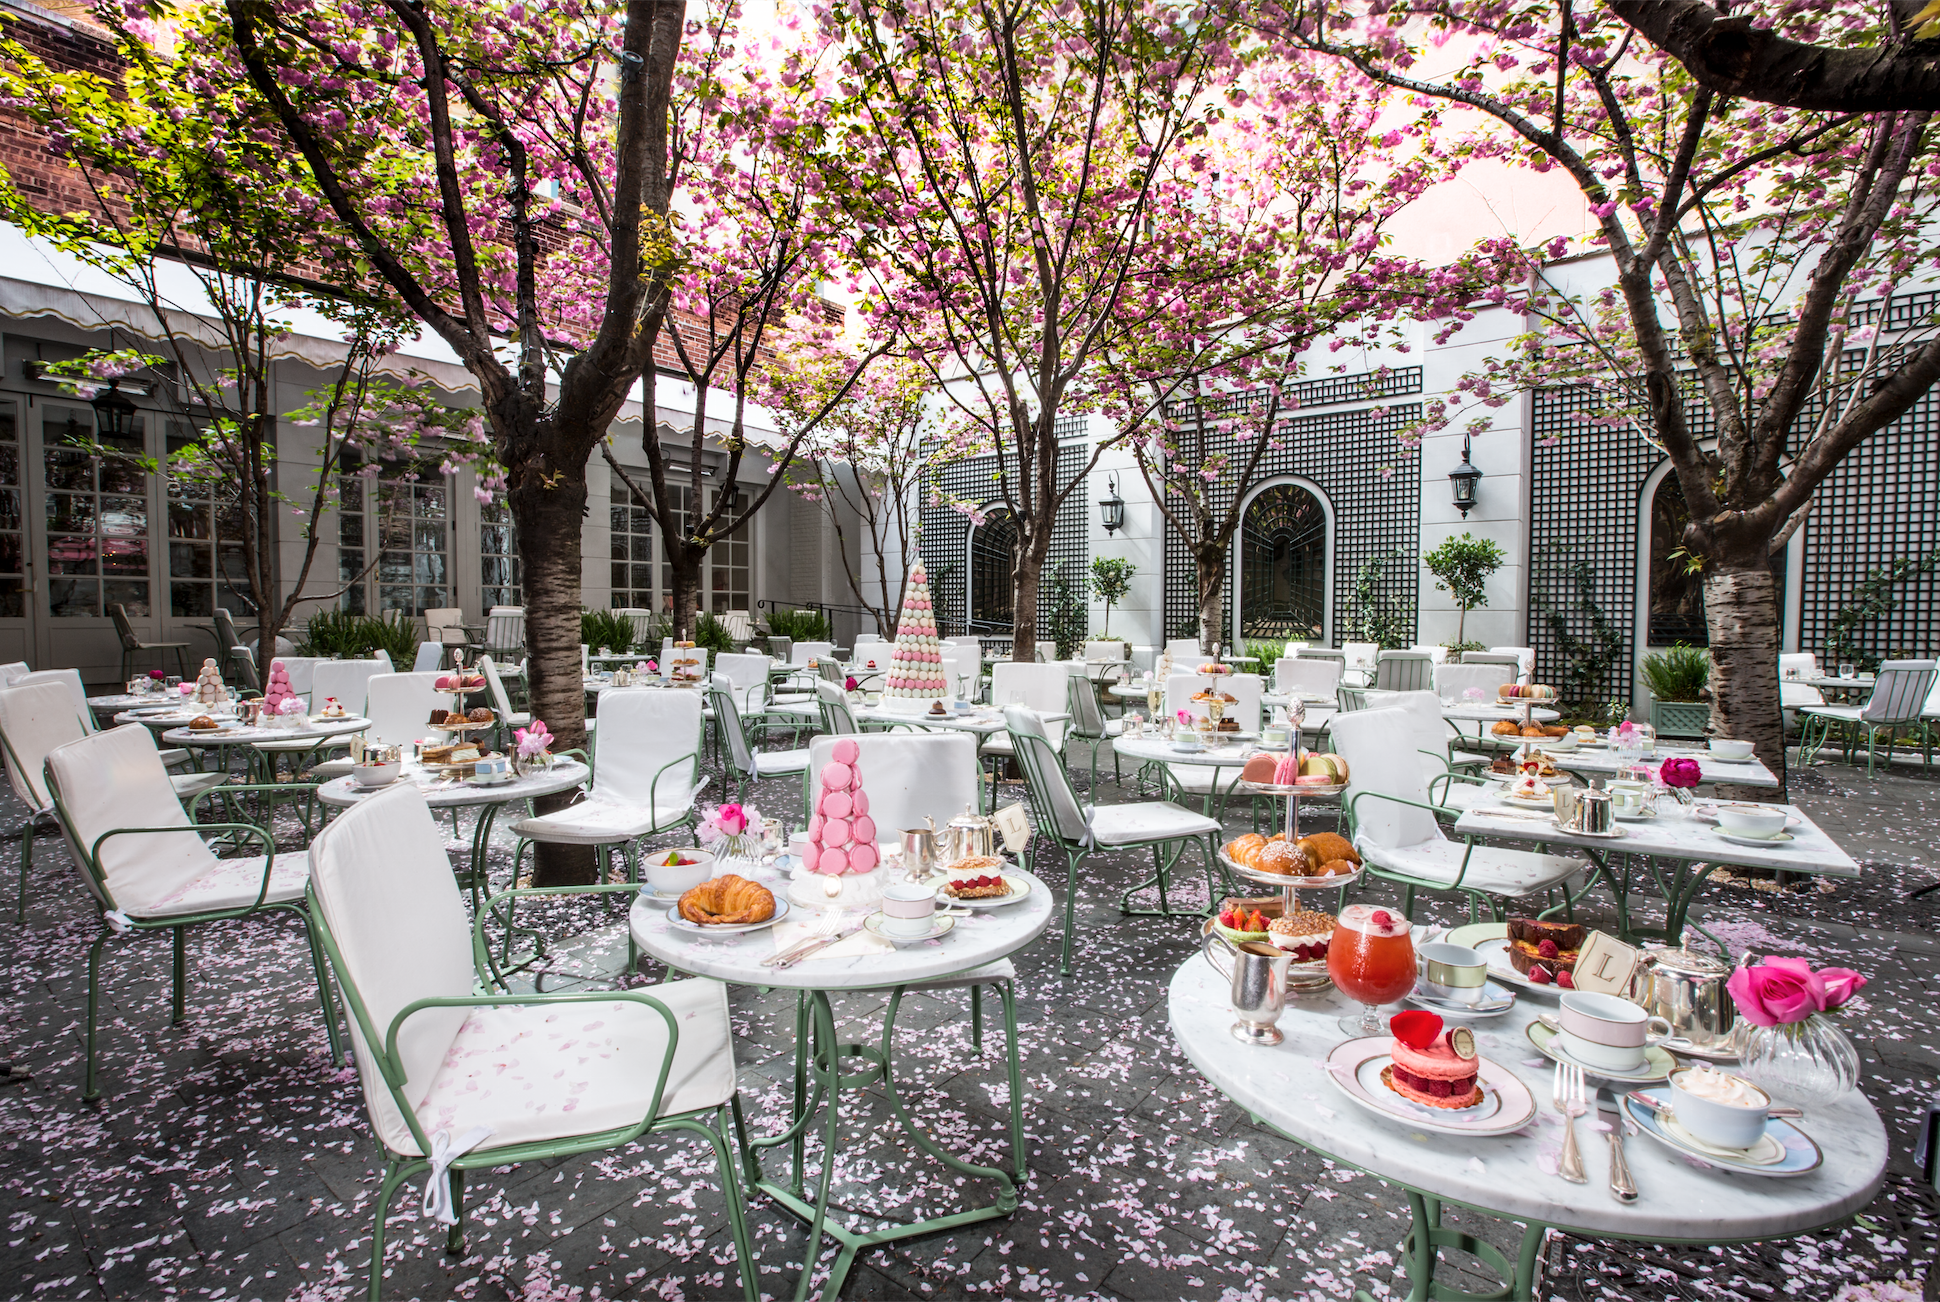 13 hidden patios, backyards and gardens for outdoor dining in NYC